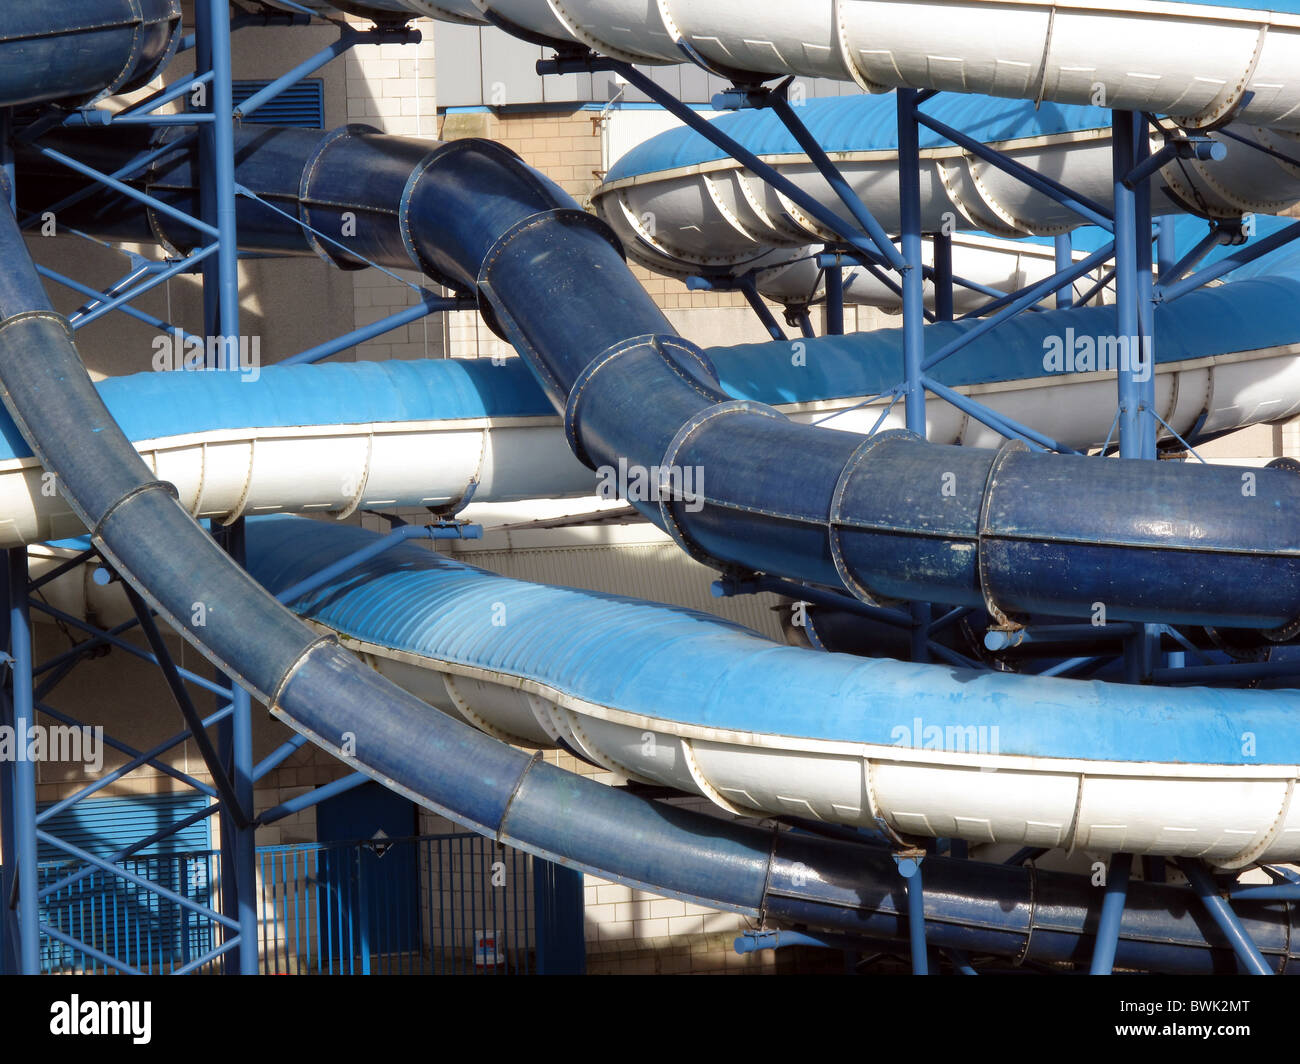 Swimming Pool Piping System : Details of external piping system a swimming pool